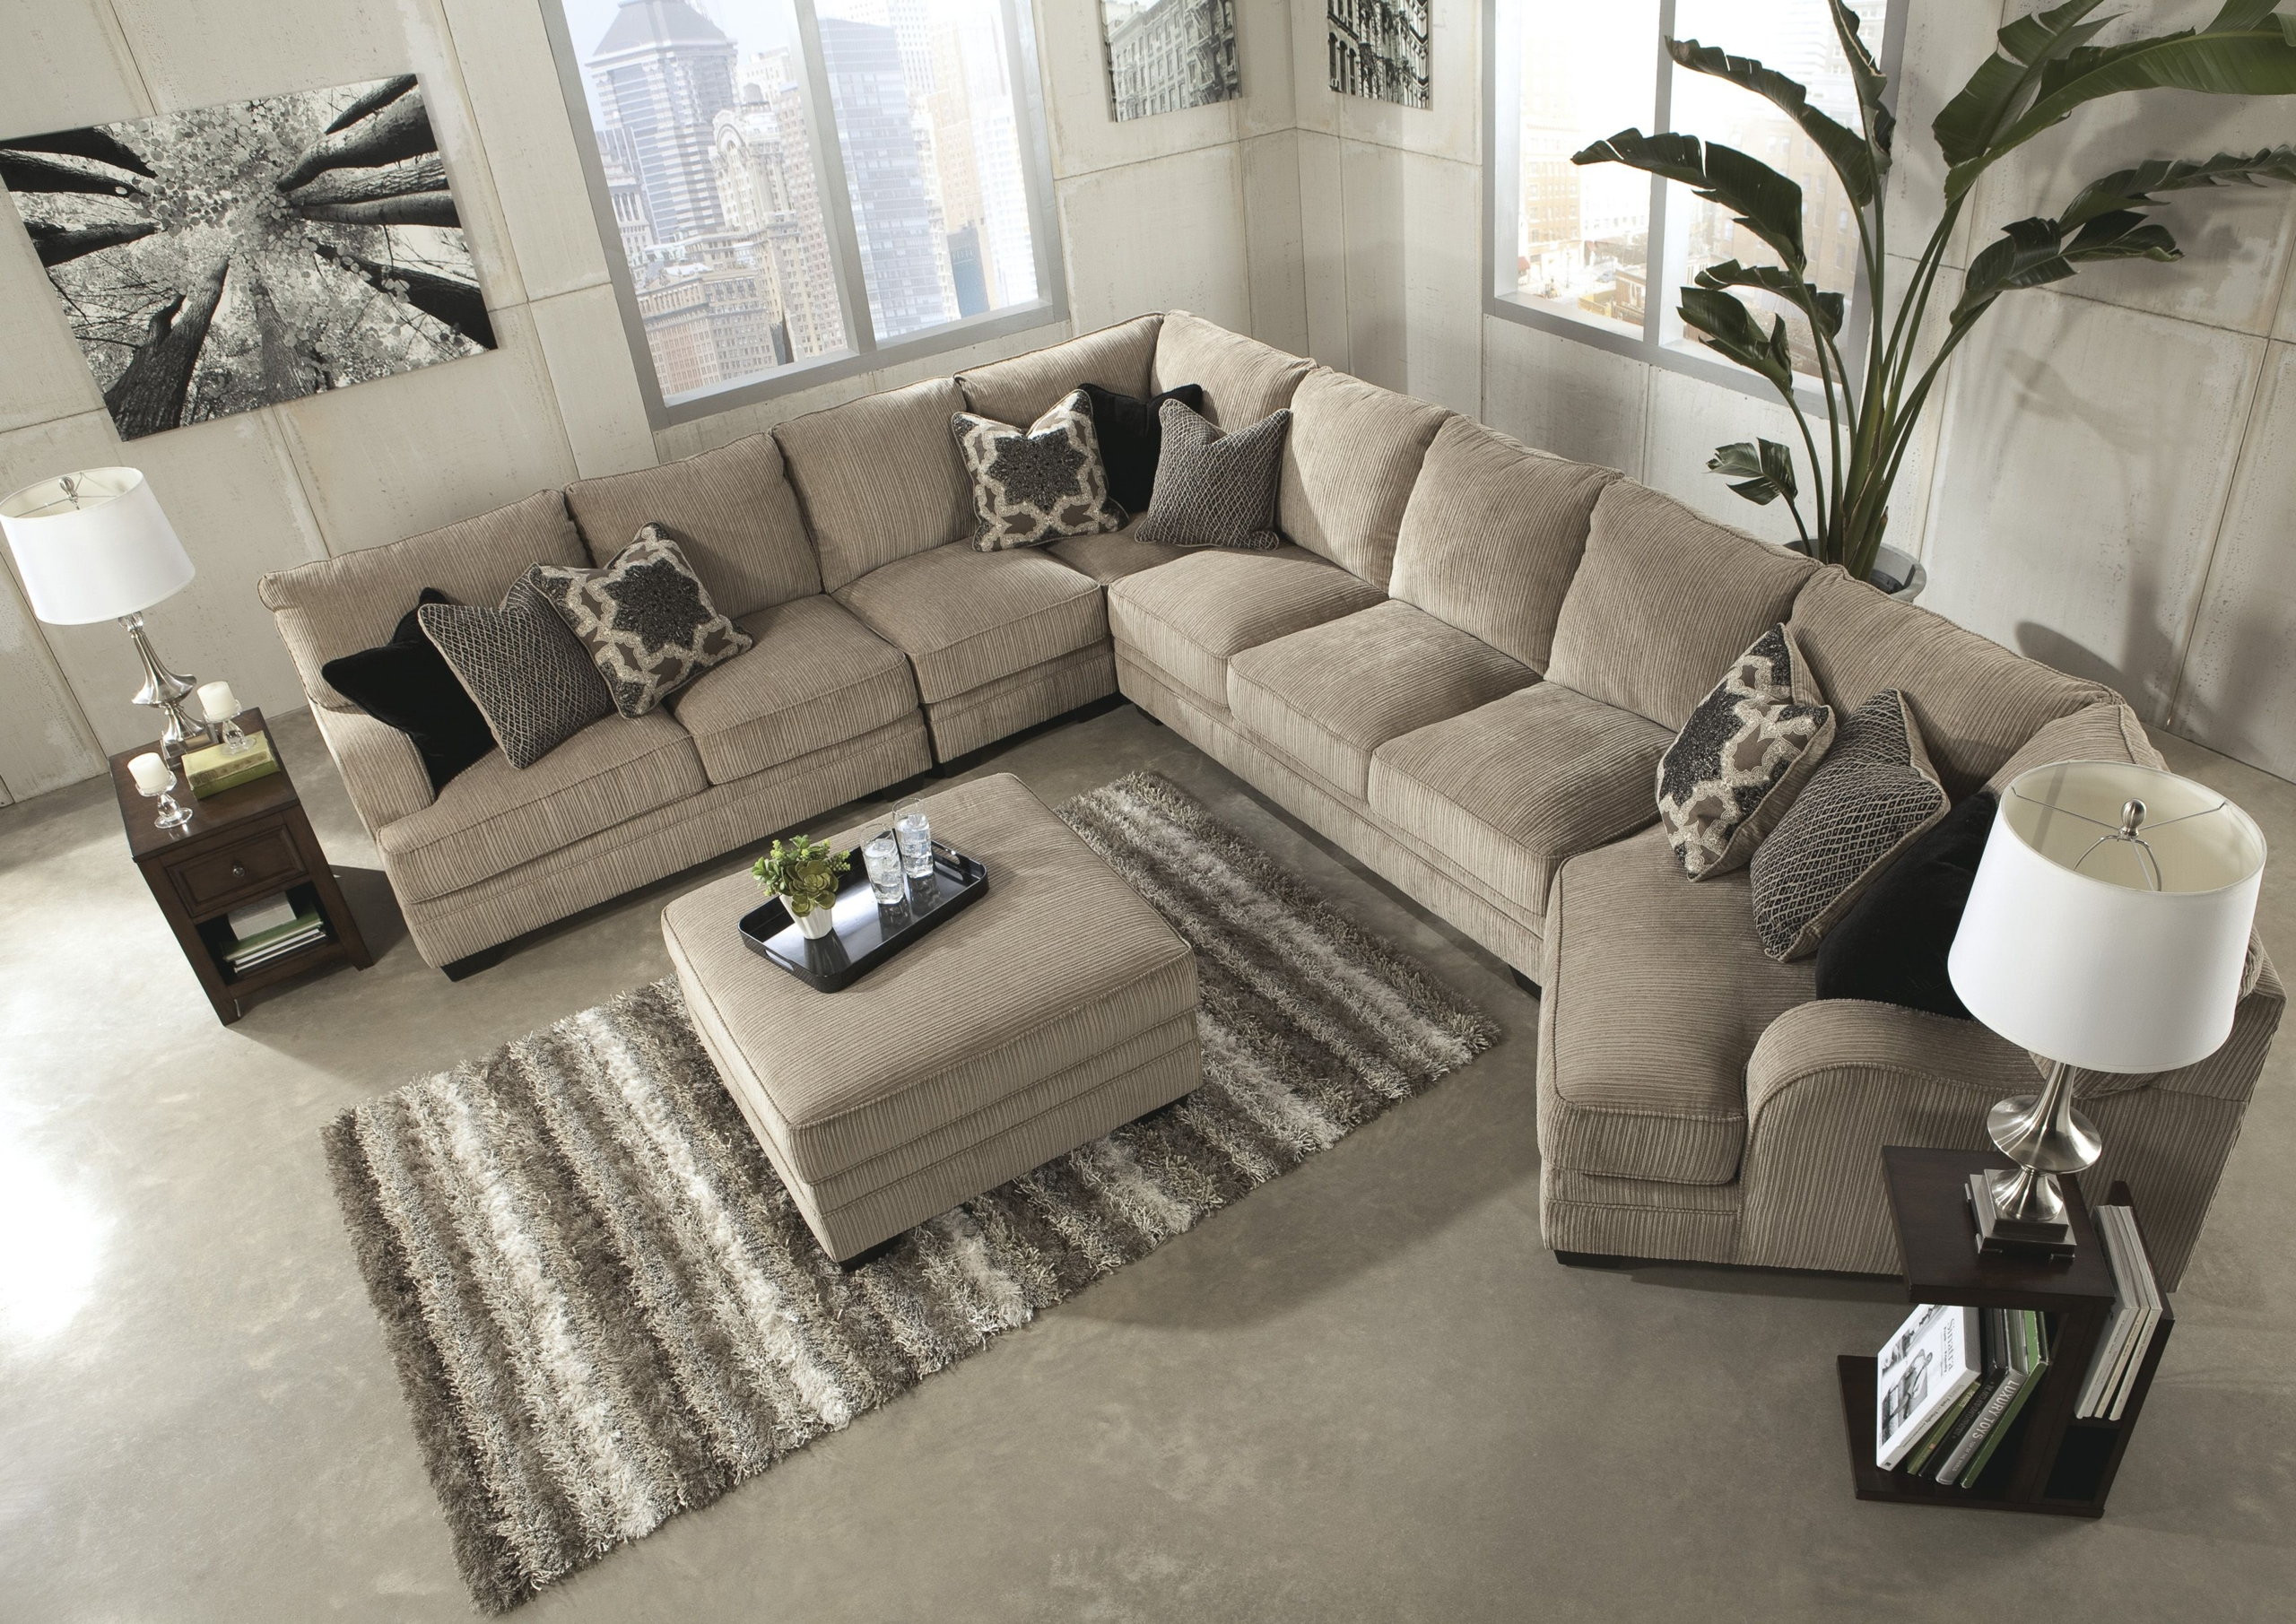 Genial Living Room Furniture Pieces 2